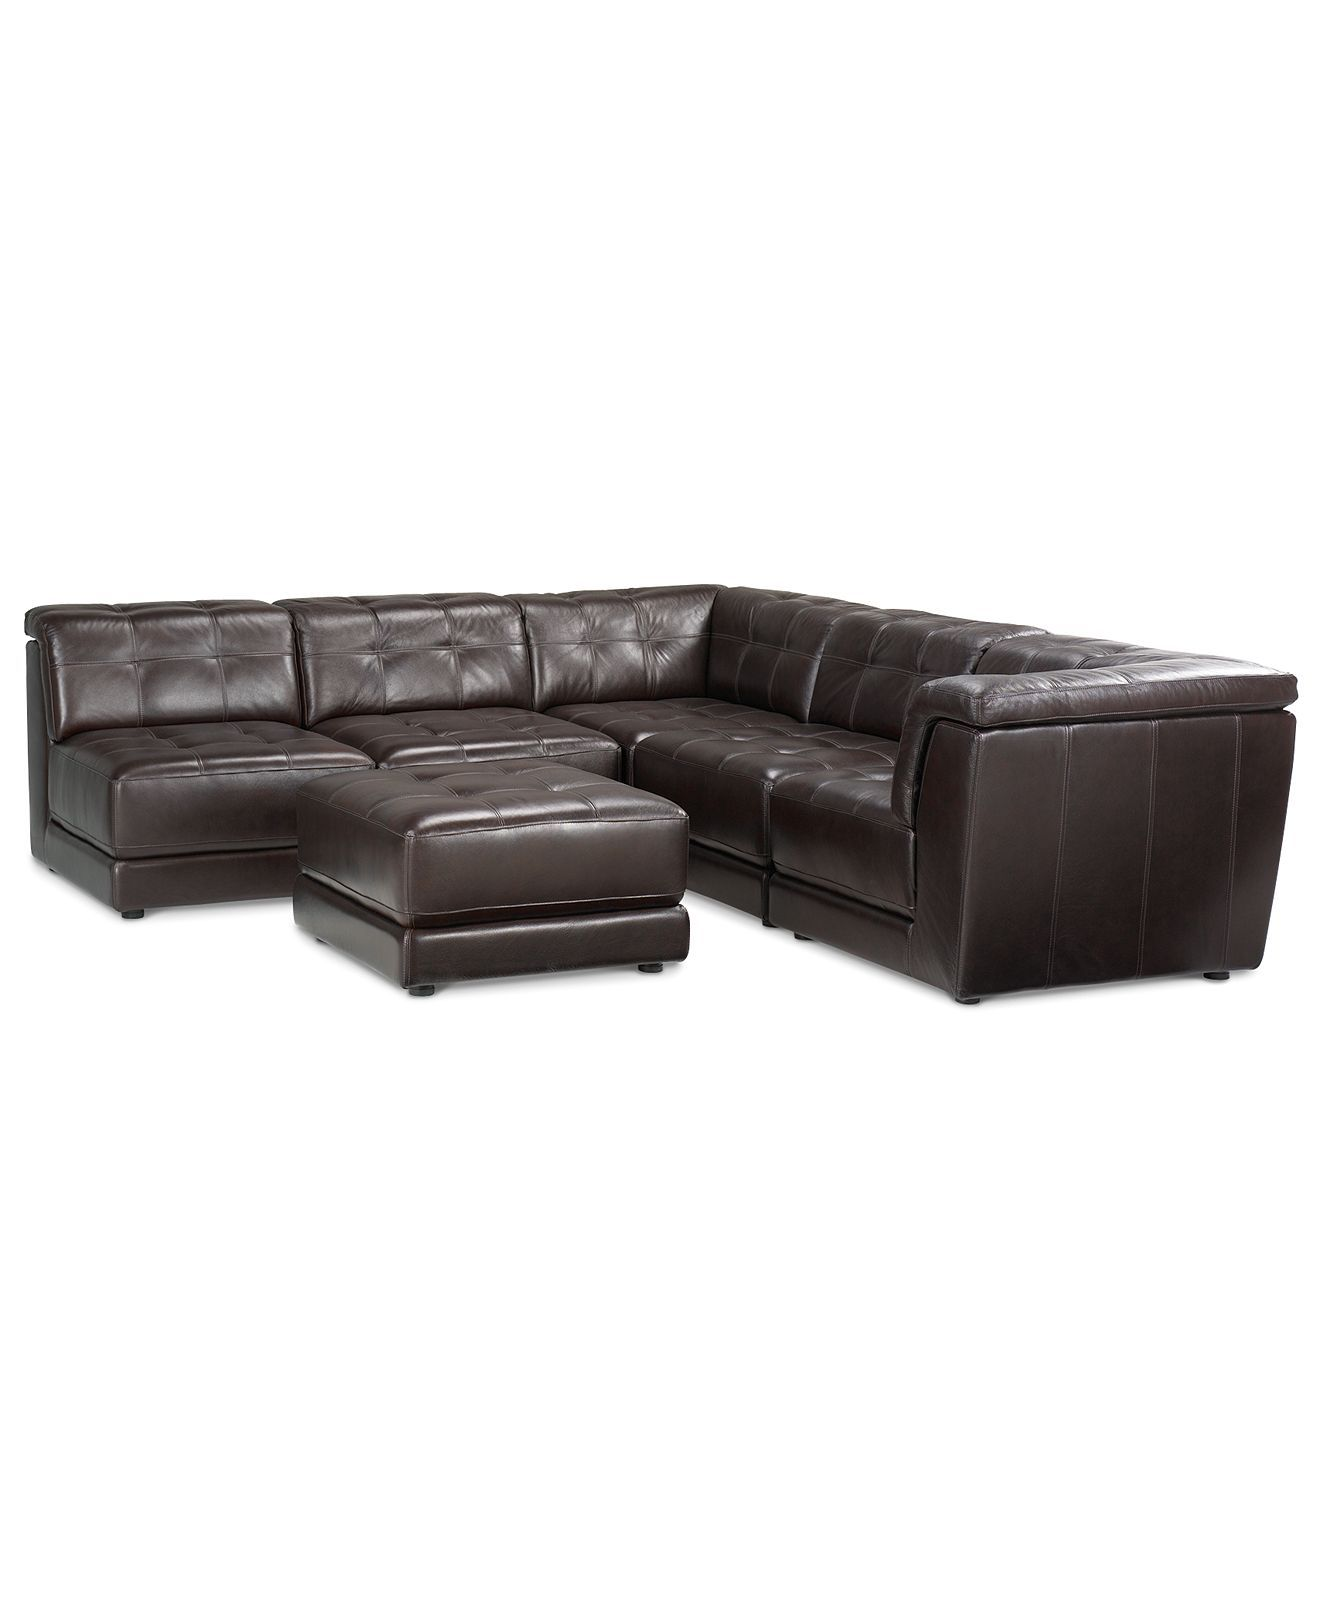 Best Stacey Leather 6 Piece Modular Sofa Leather Sectional 400 x 300